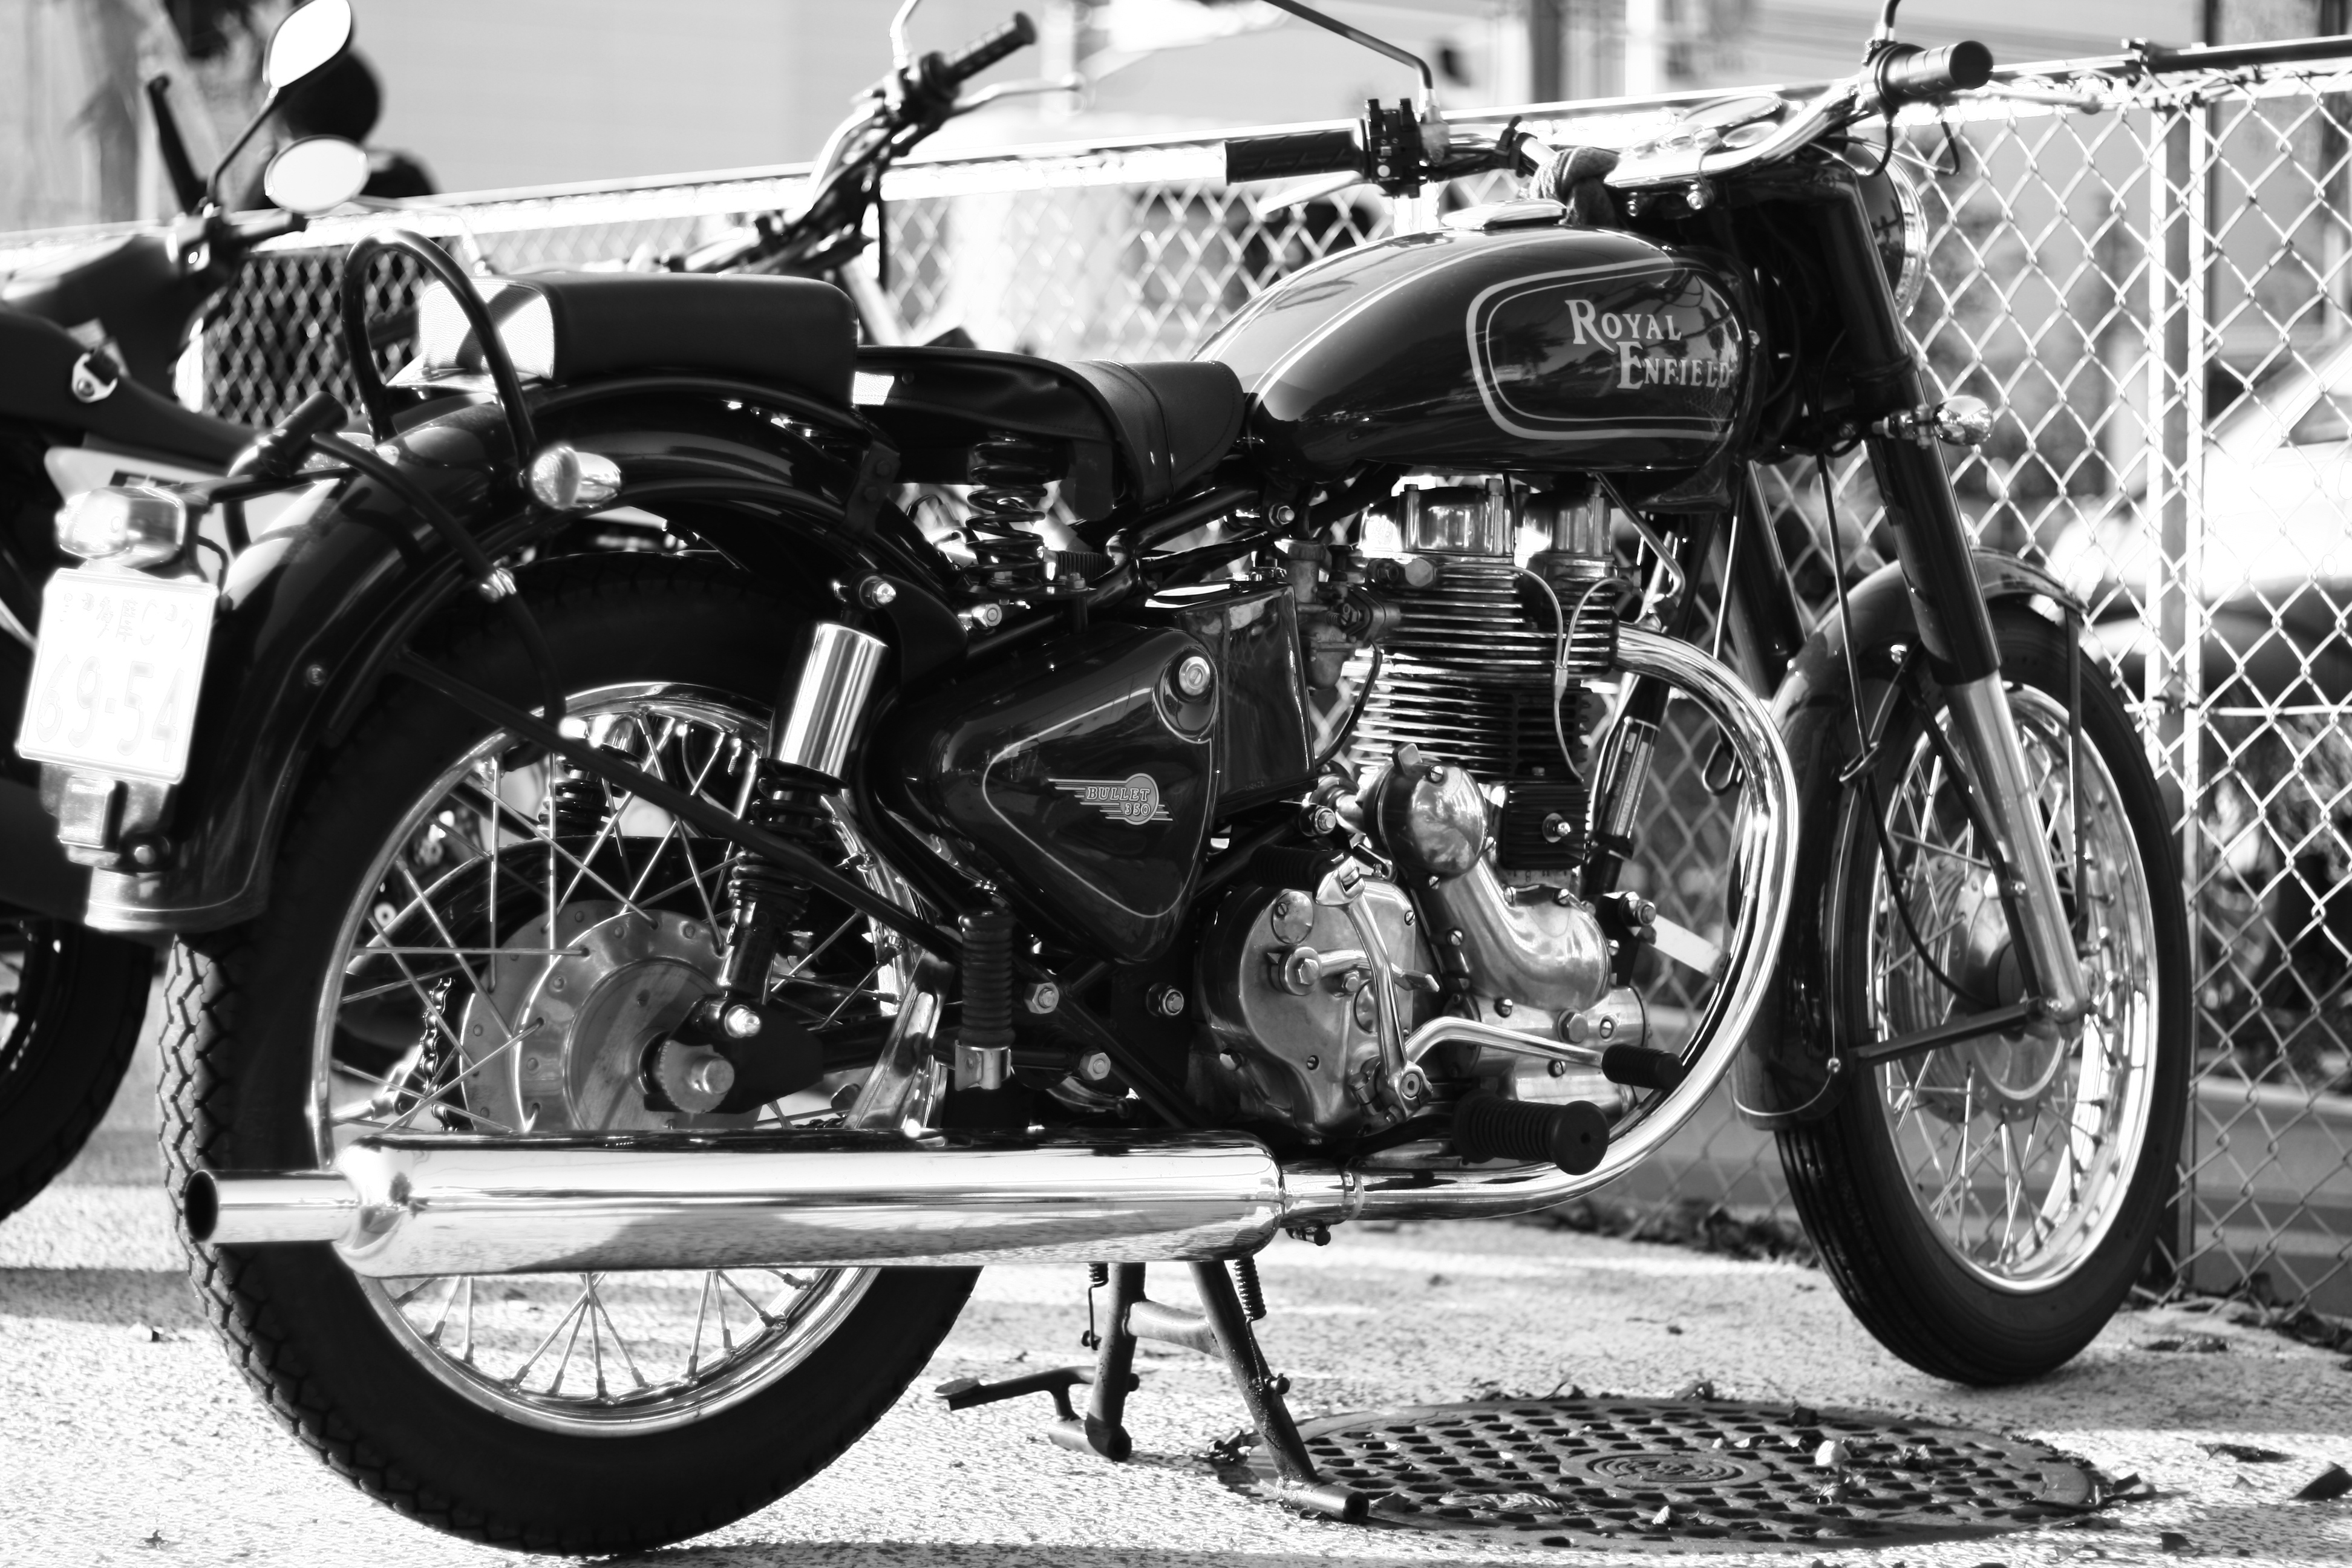 Royal Enfield Bullet 350 Classic 2007 images #123980